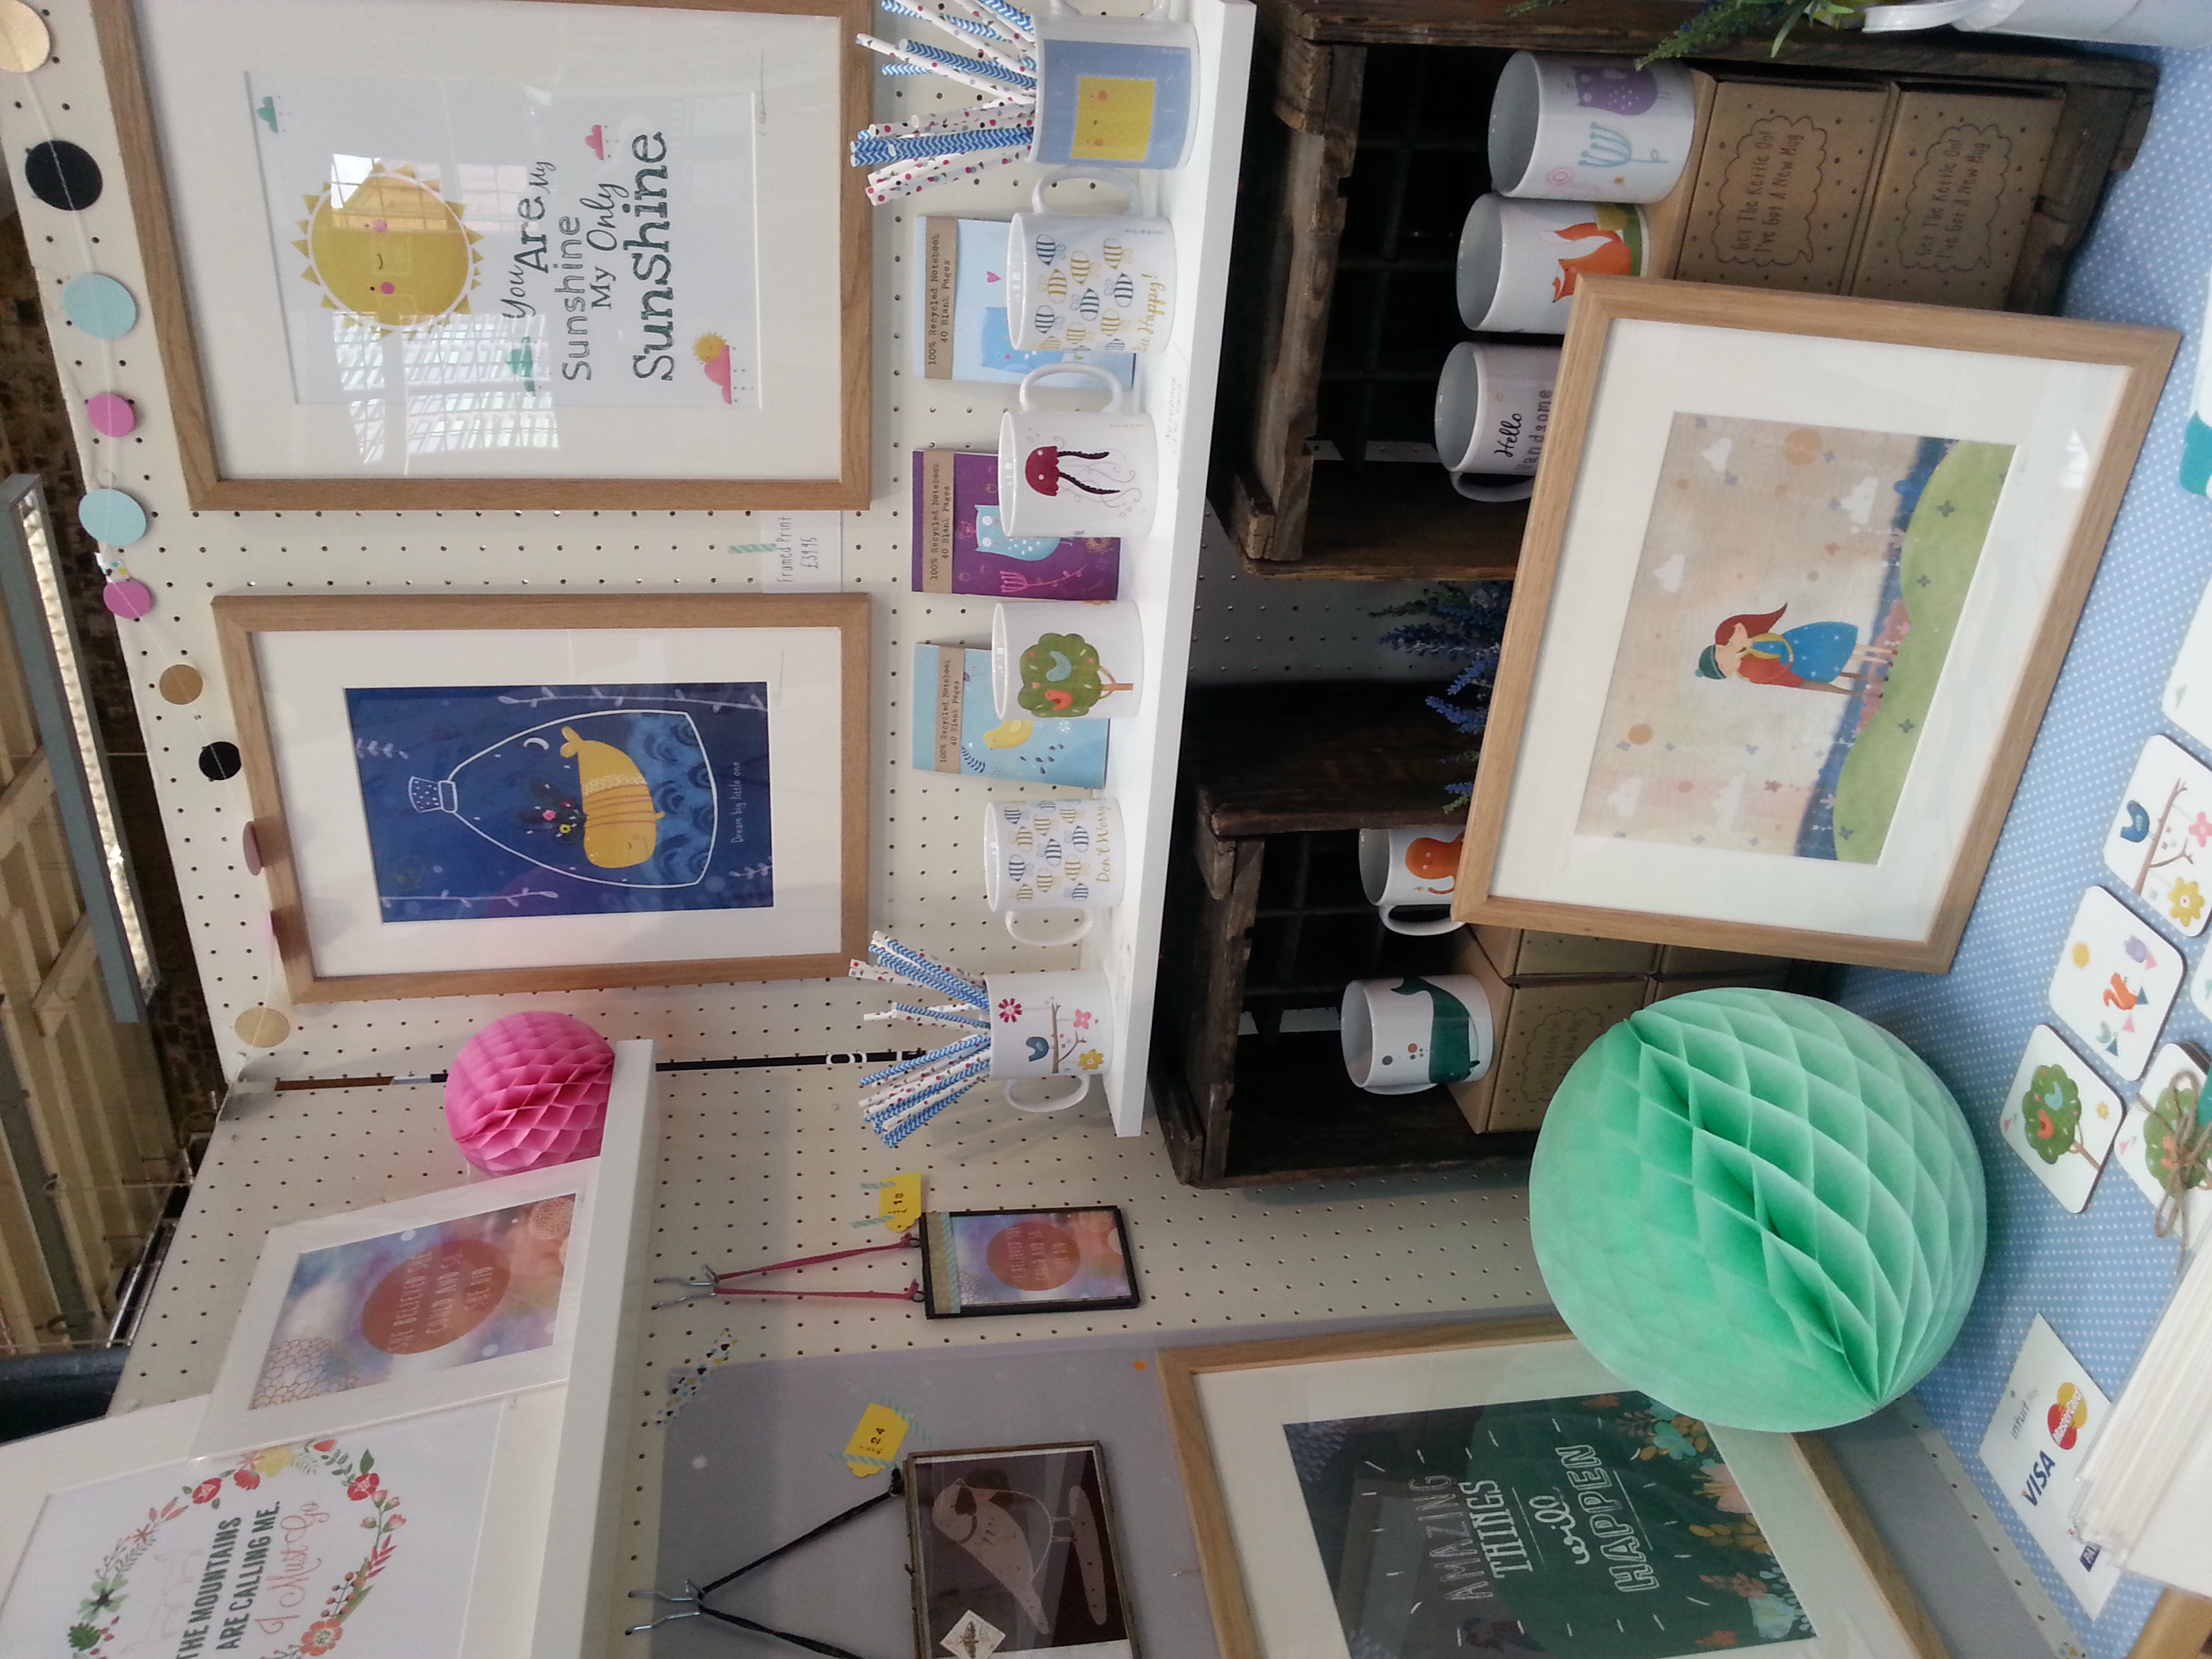 A part of one of my stands at a craft fair